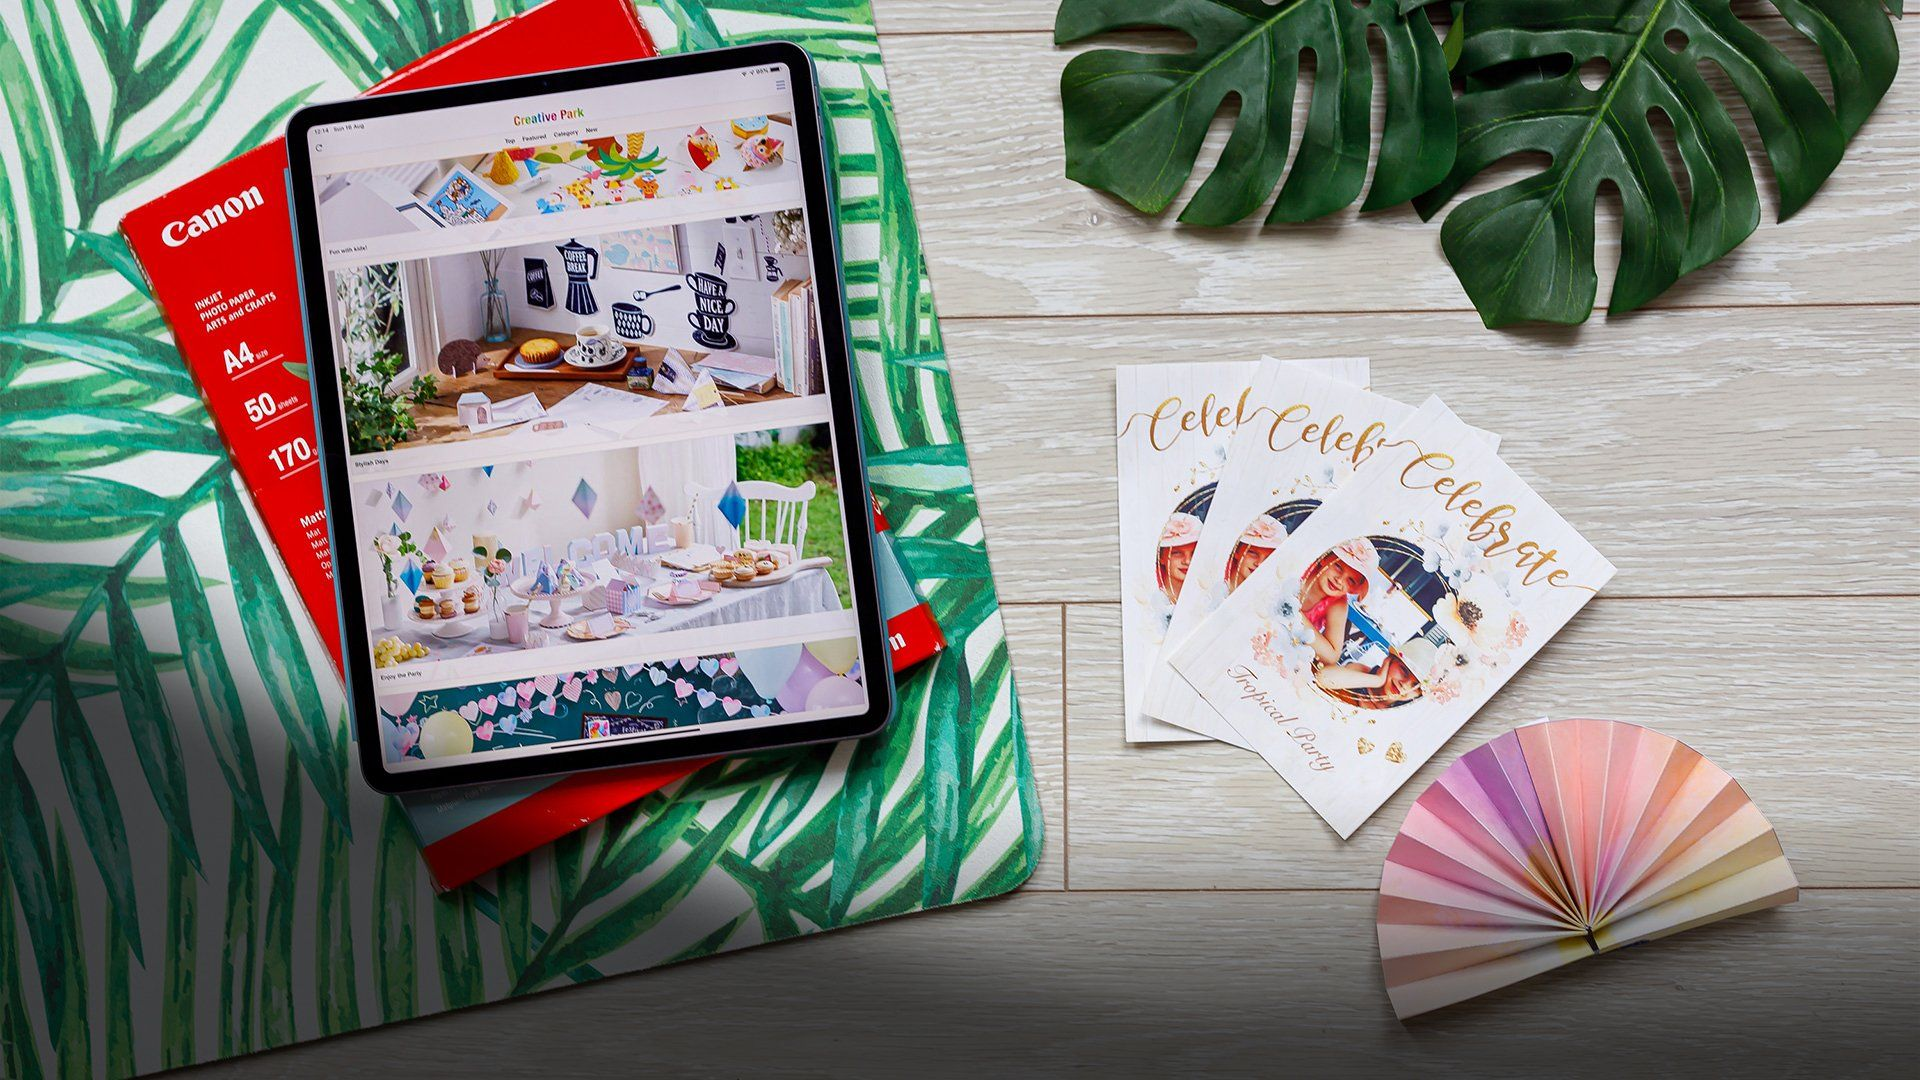 A tablet showing the Creative Park app next to personalised cards and a party garland.